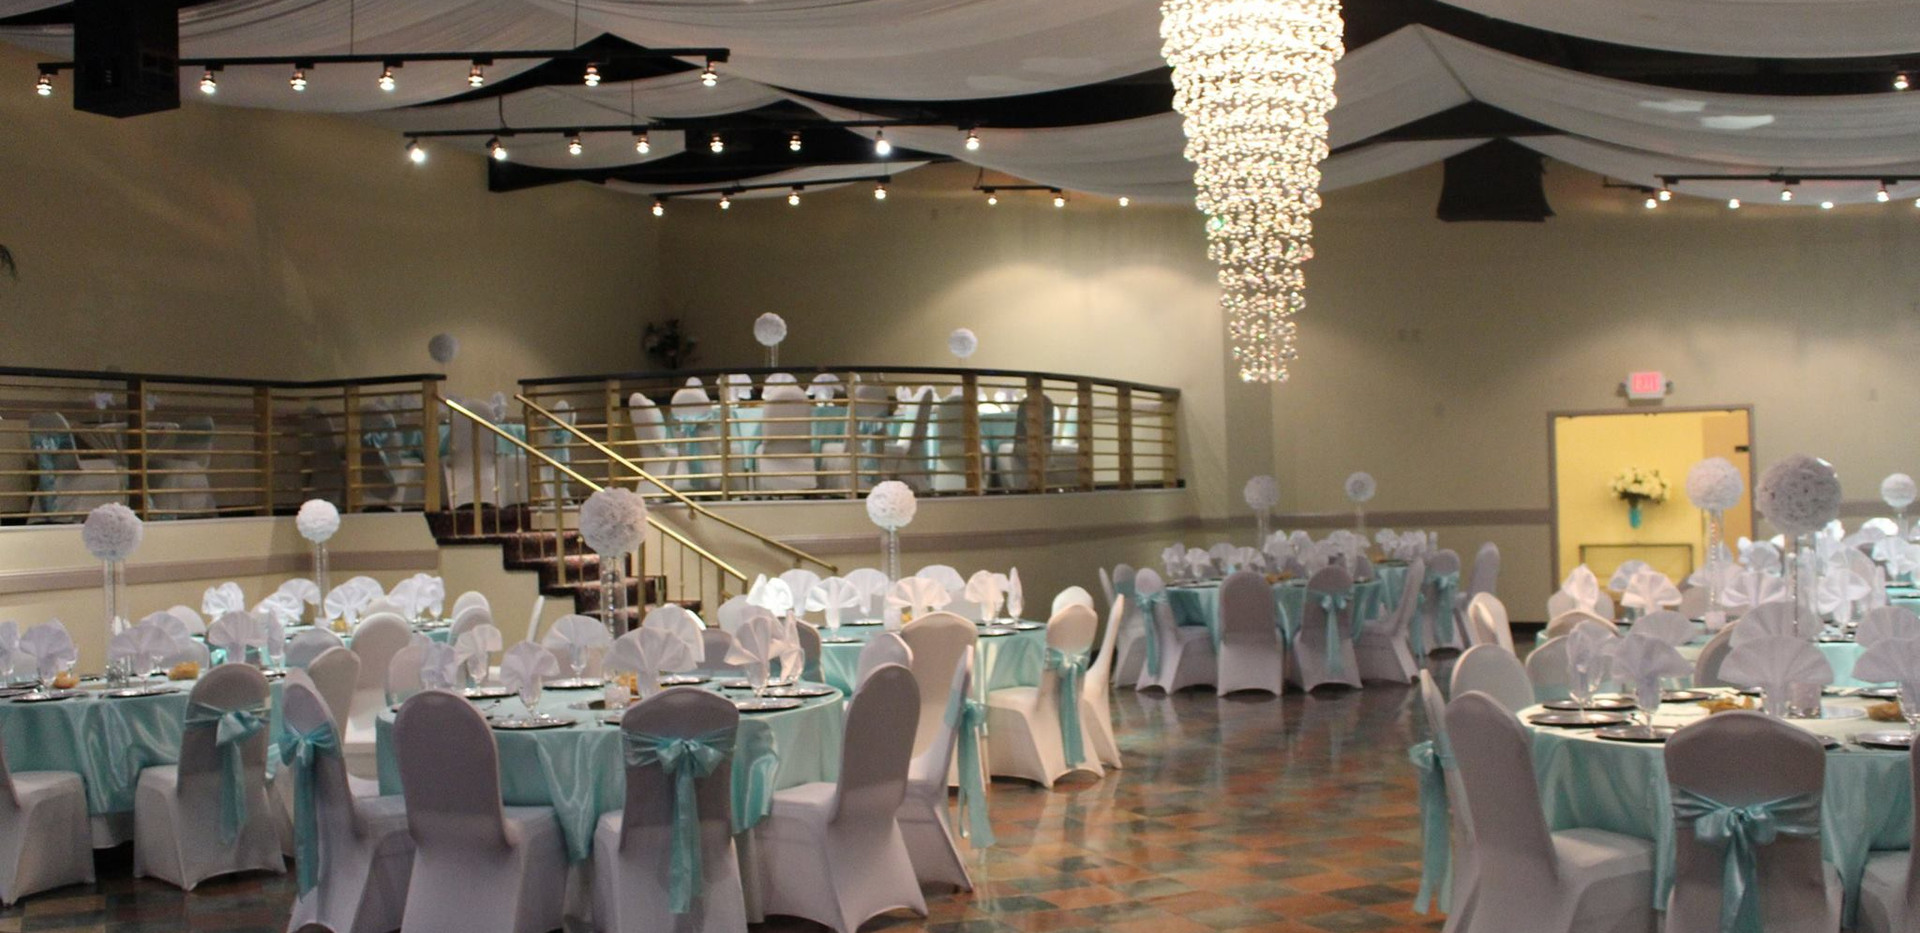 decorating-a-hall-for-a-baby-shower-fsli